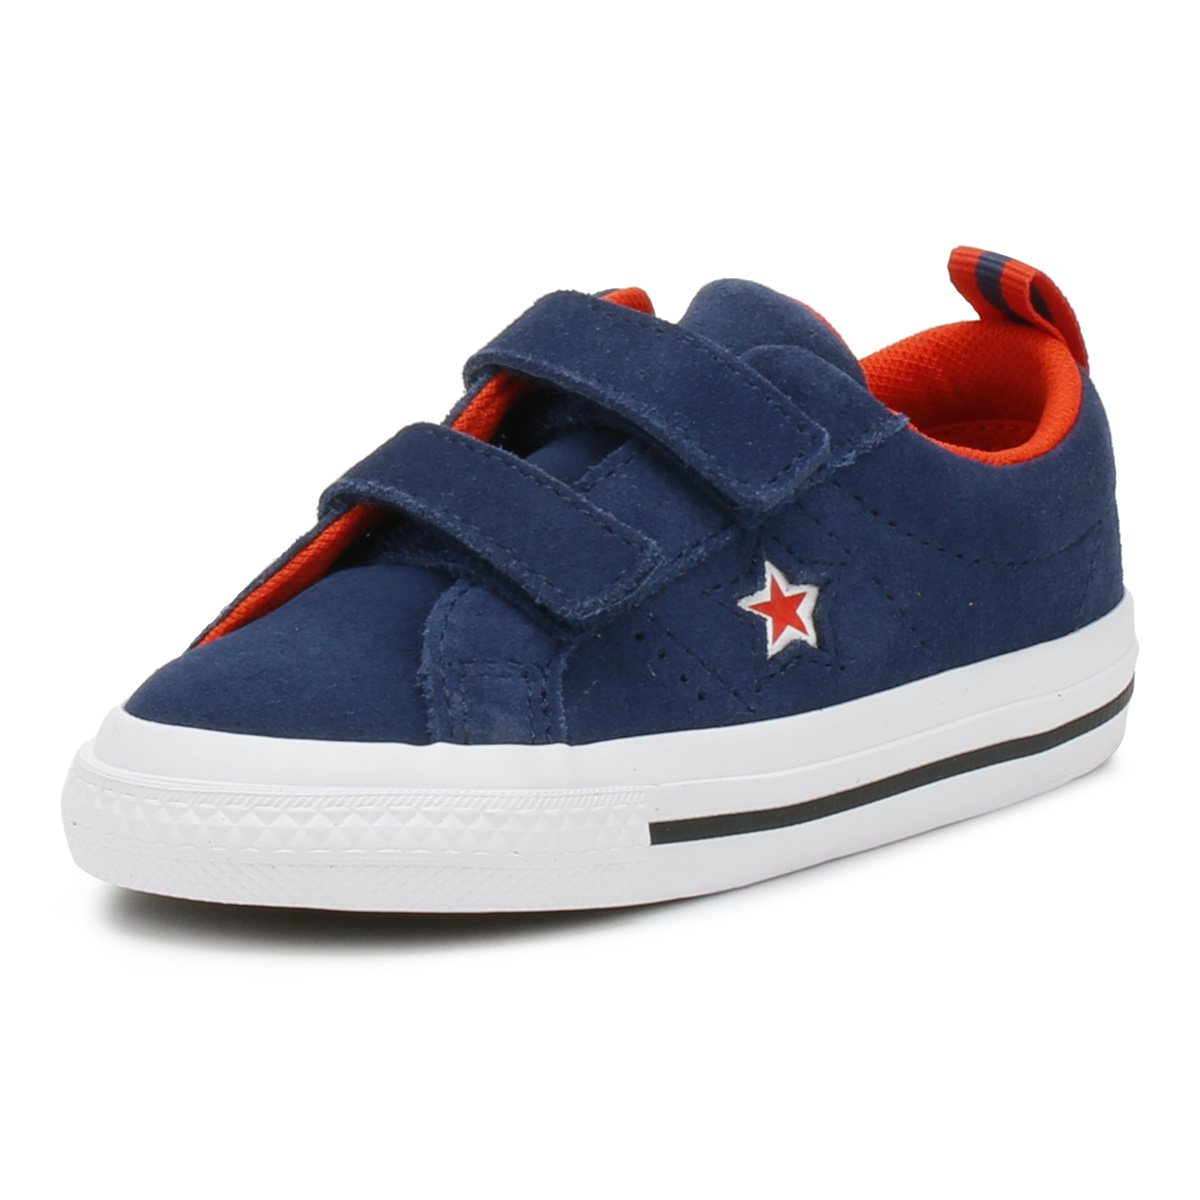 67163188d0a0 Details about Converse One Star Toddlers Ox Trainers Navy   White Canvas 2V  Kids Casual Shoes